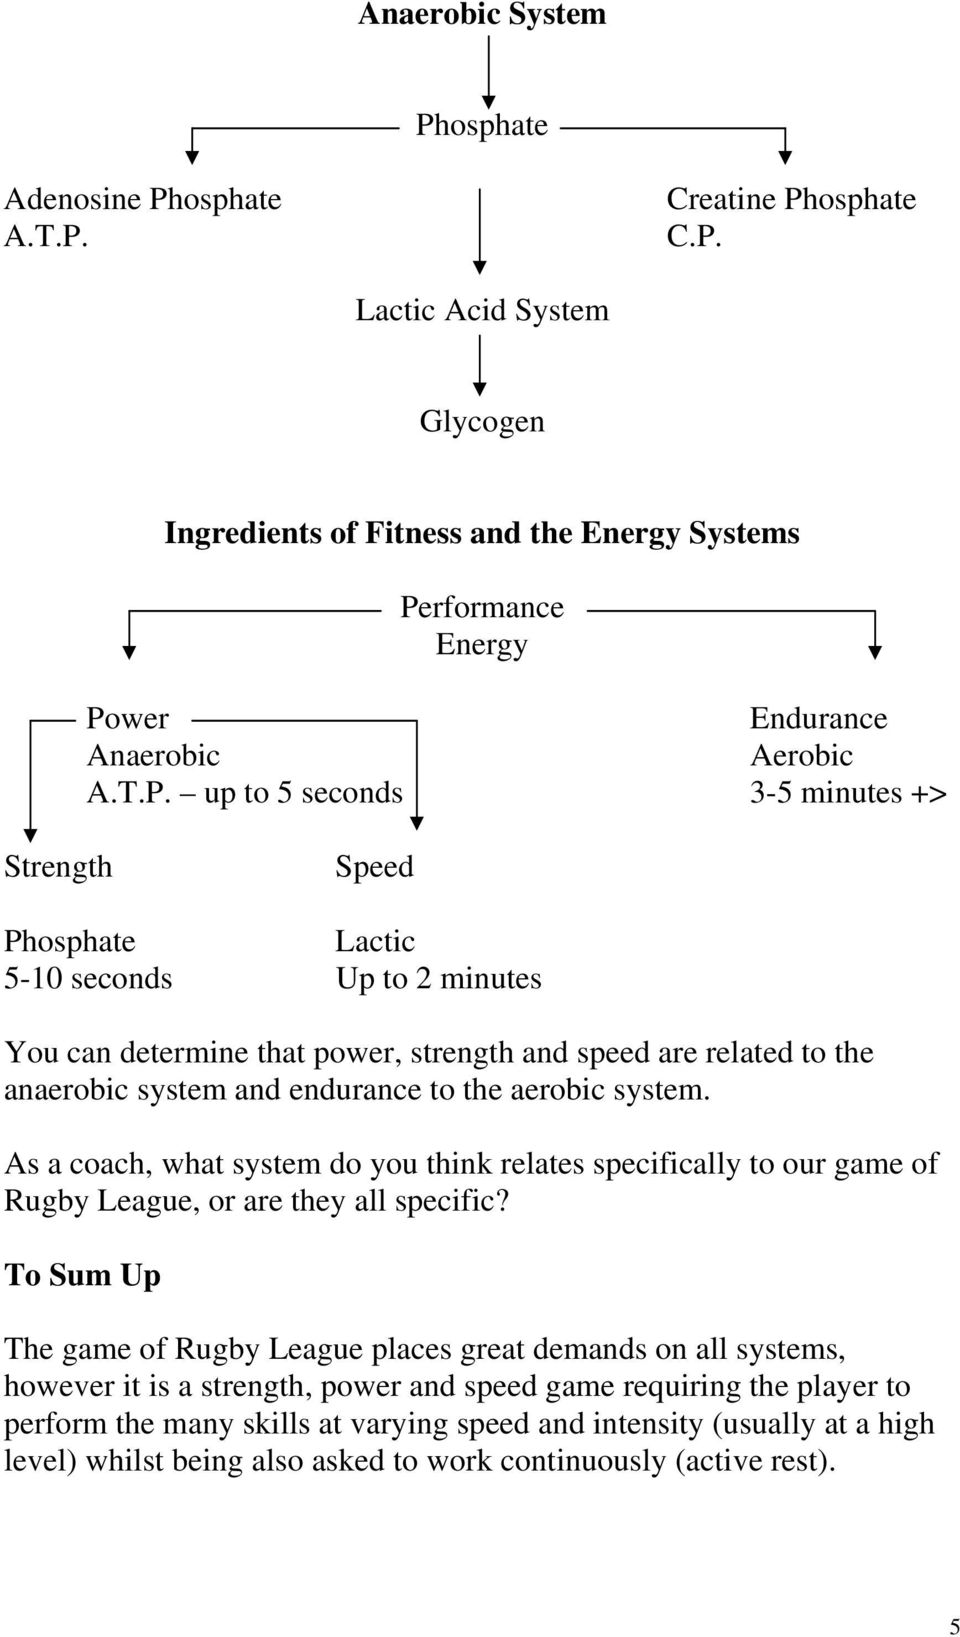 the aerobic system. As a coach, what system do you think relates specifically to our game of Rugby League, or are they all specific?